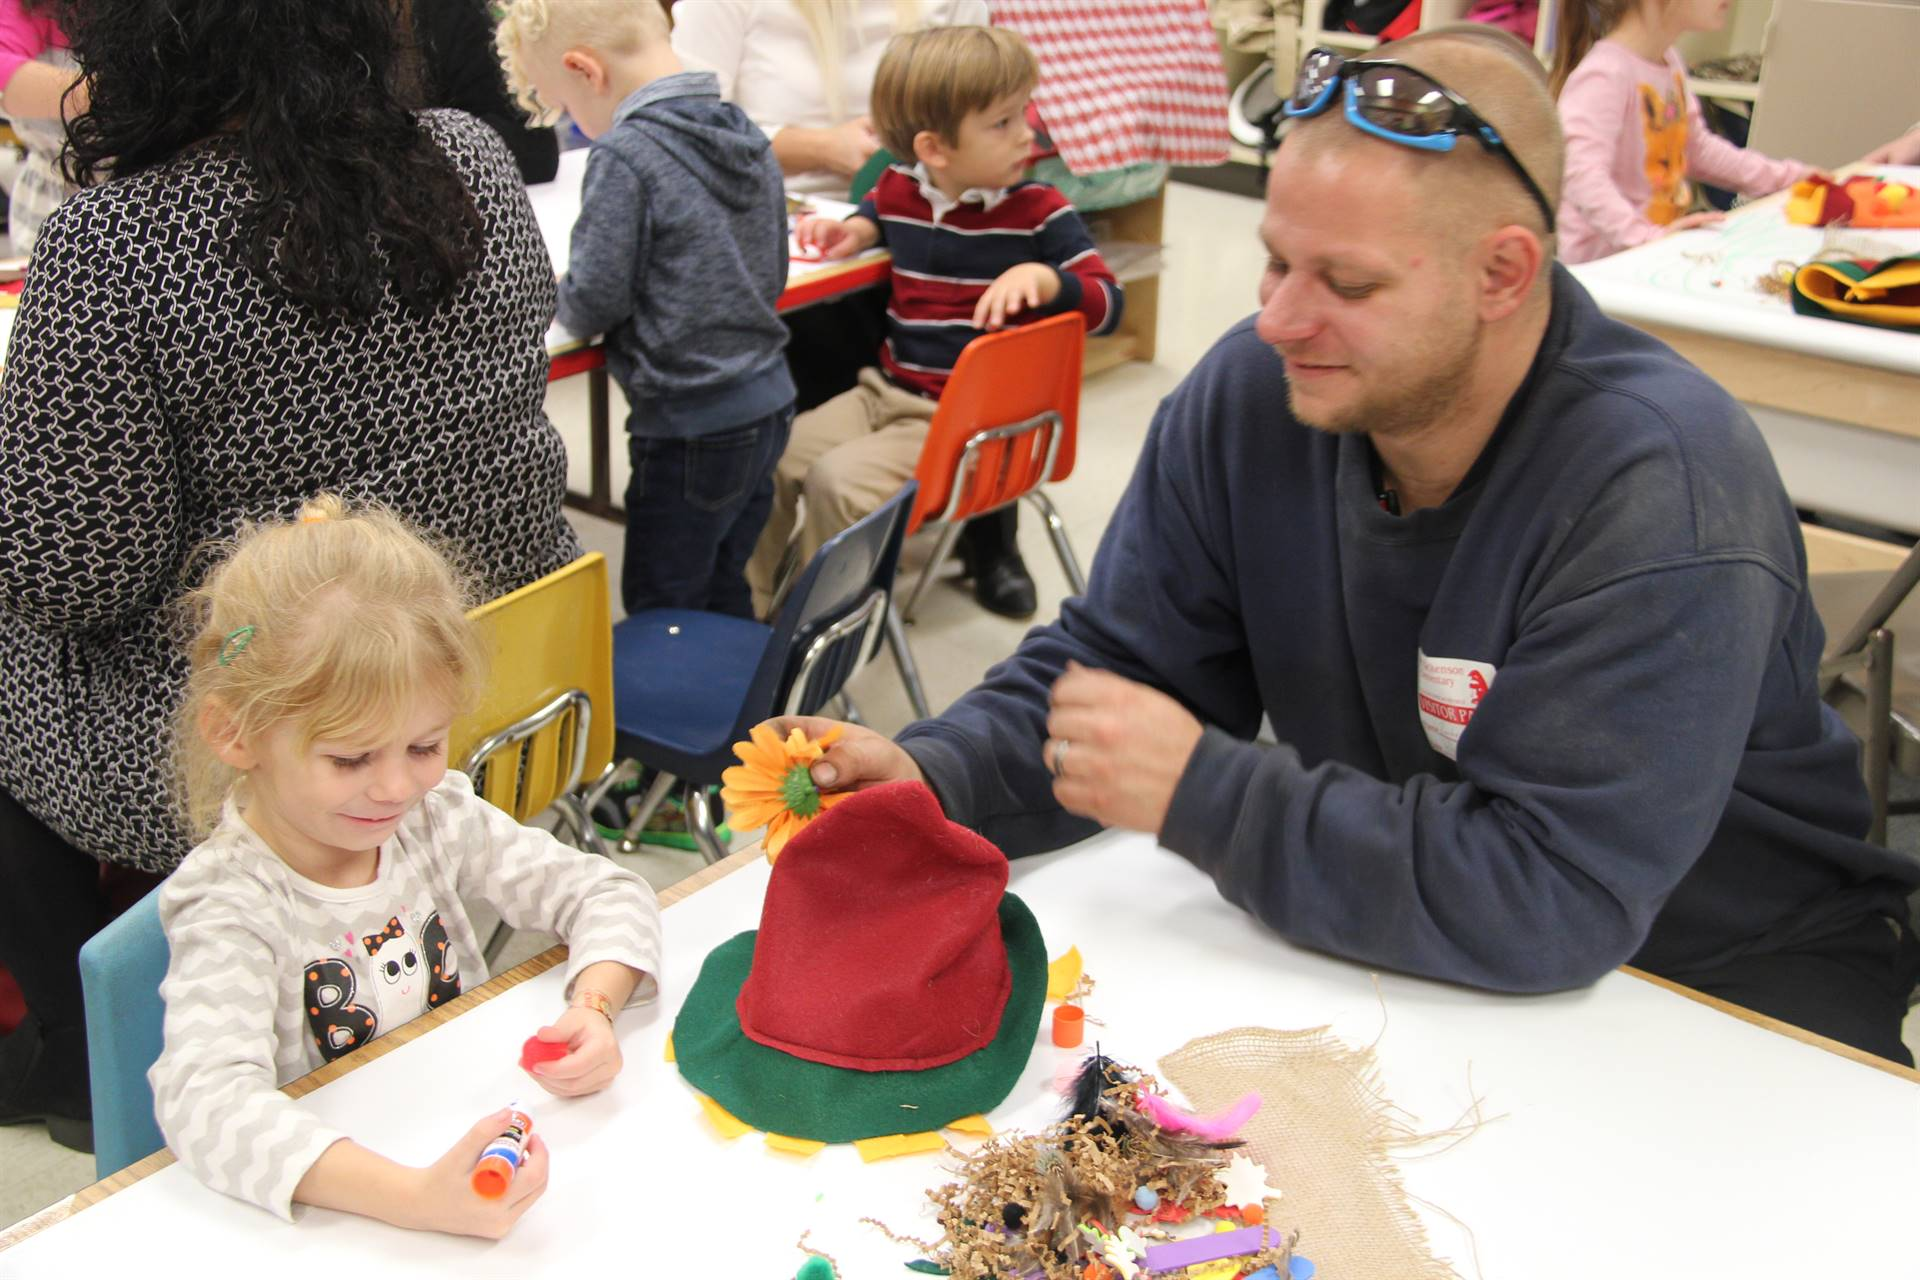 man helps student glue flower on hat at pre k family day